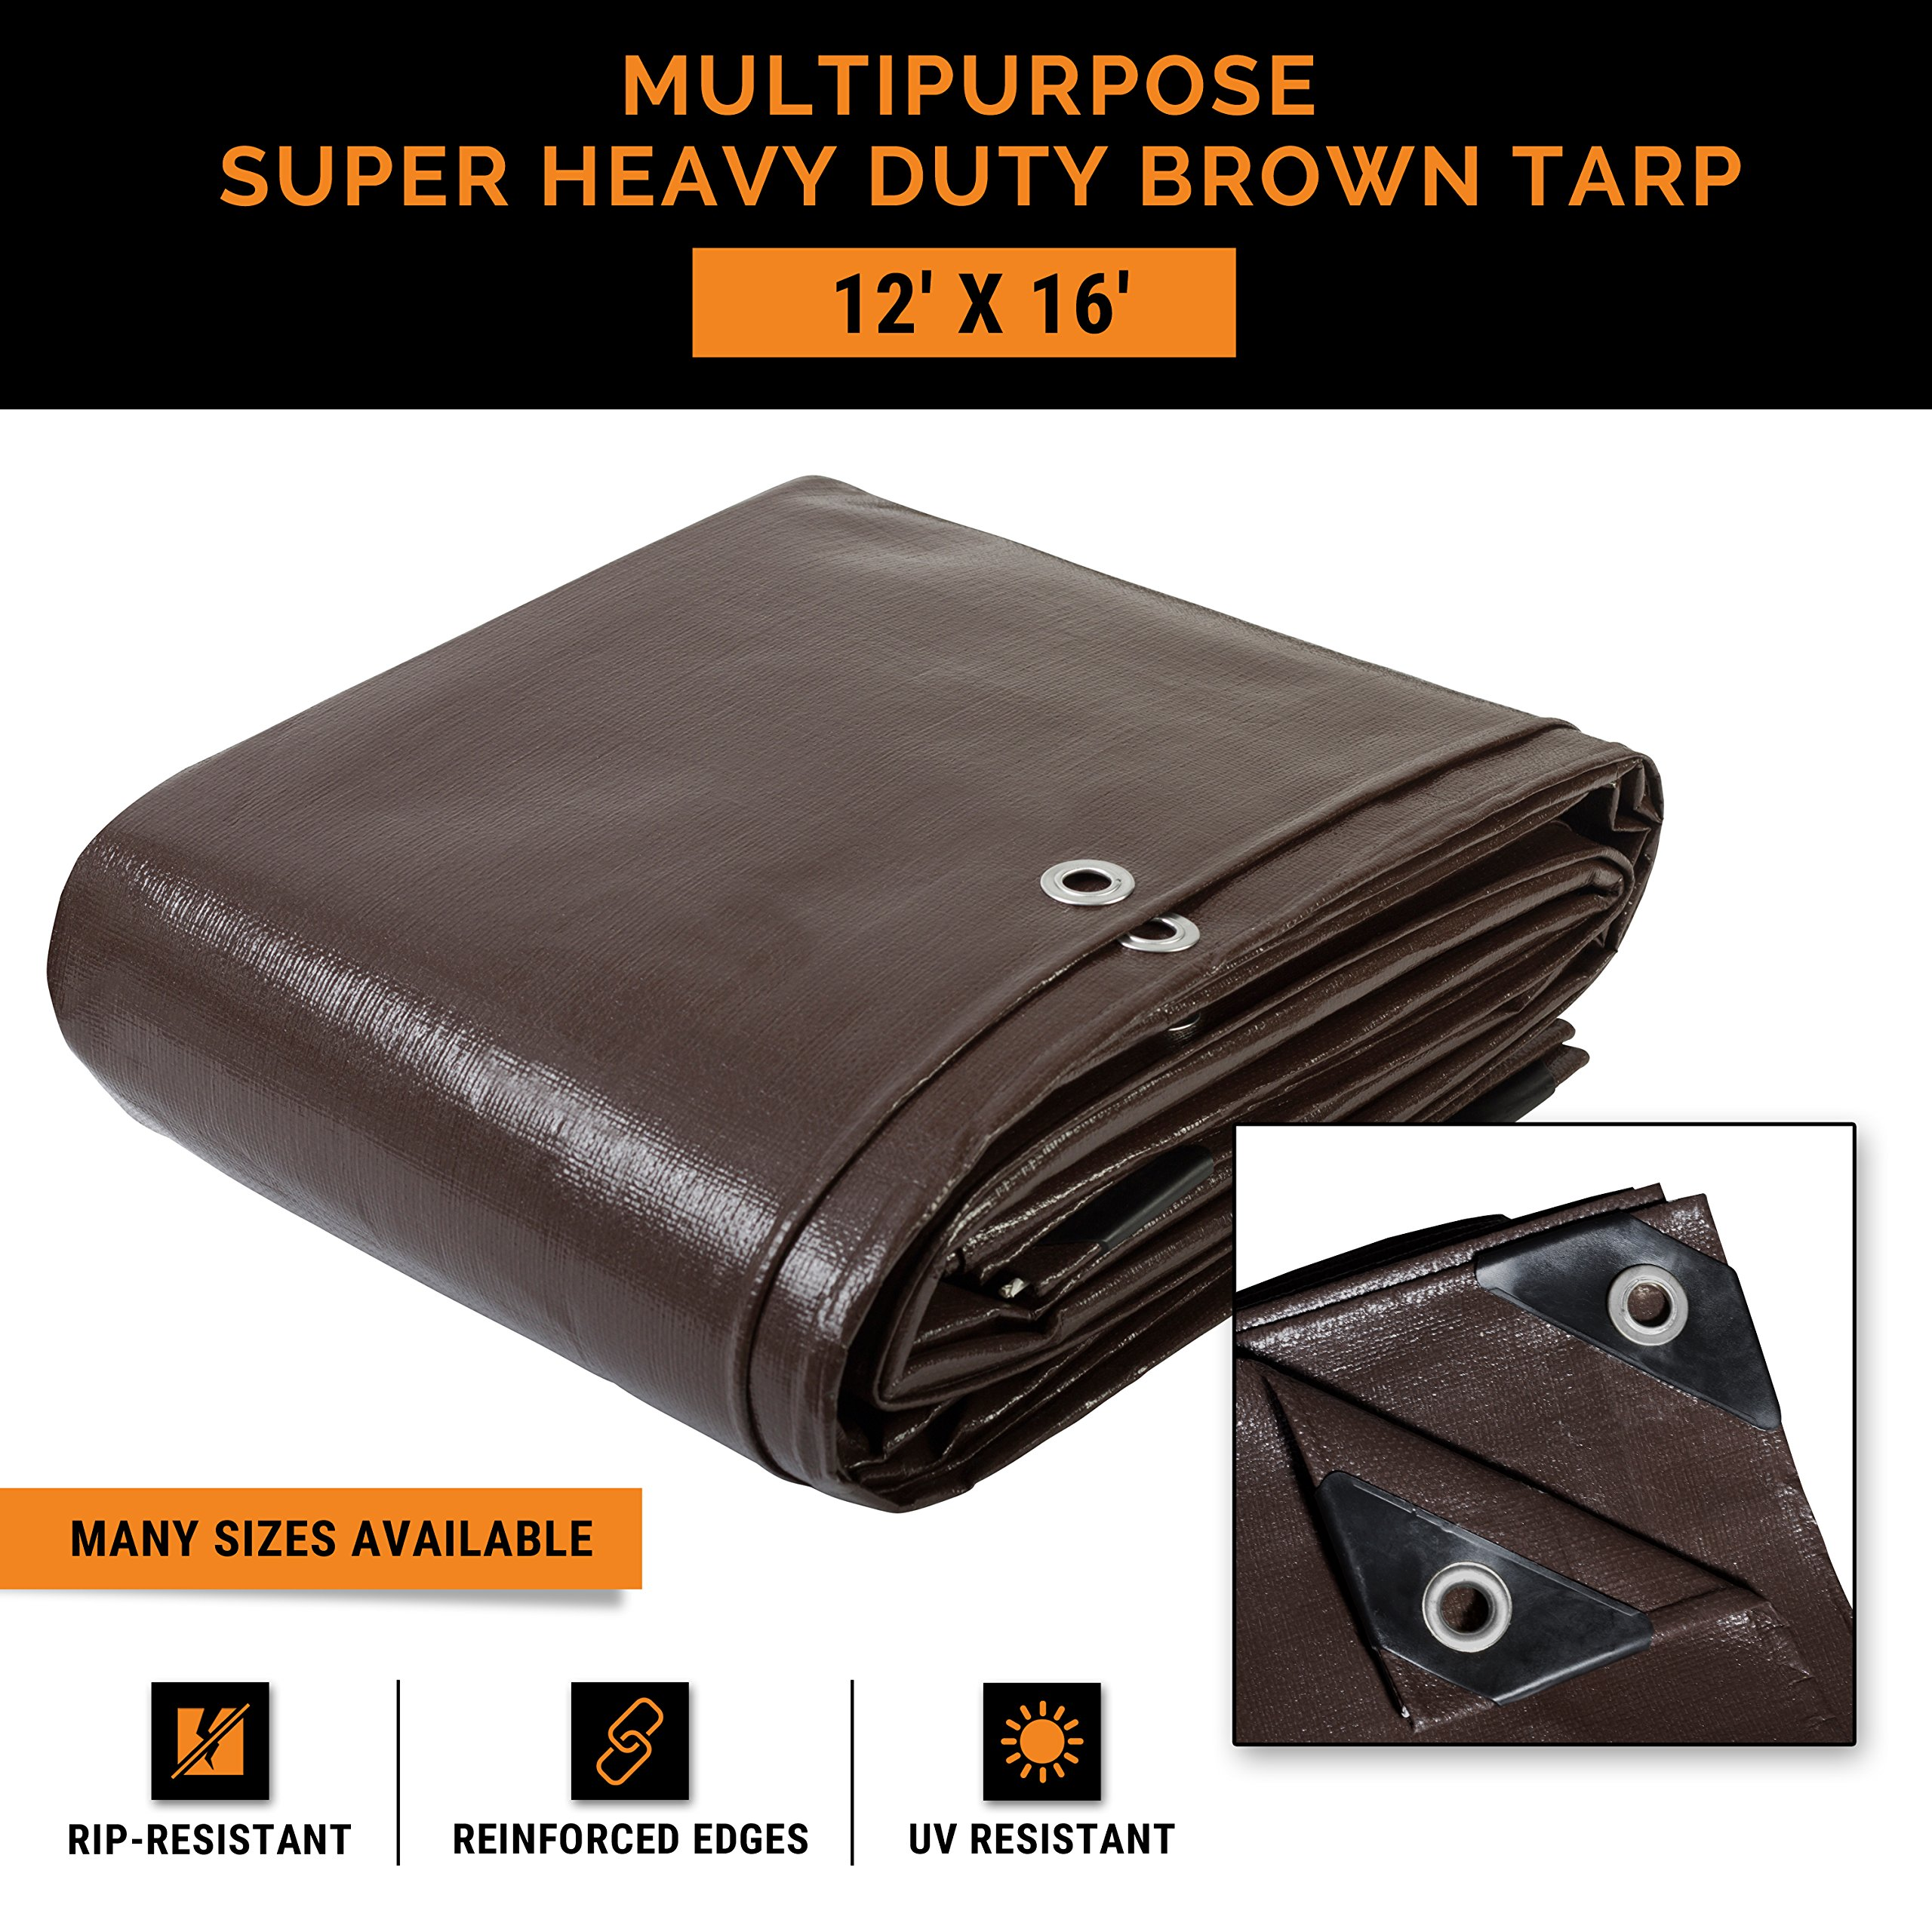 12' x 16' Super Heavy Duty 16 Mil Brown Poly Tarp Cover - Thick Waterproof, UV Resistant, Rot, Rip and Tear Proof Tarpaulin with Grommets and Reinforced Edges - by Xpose Safety by Xpose Safety